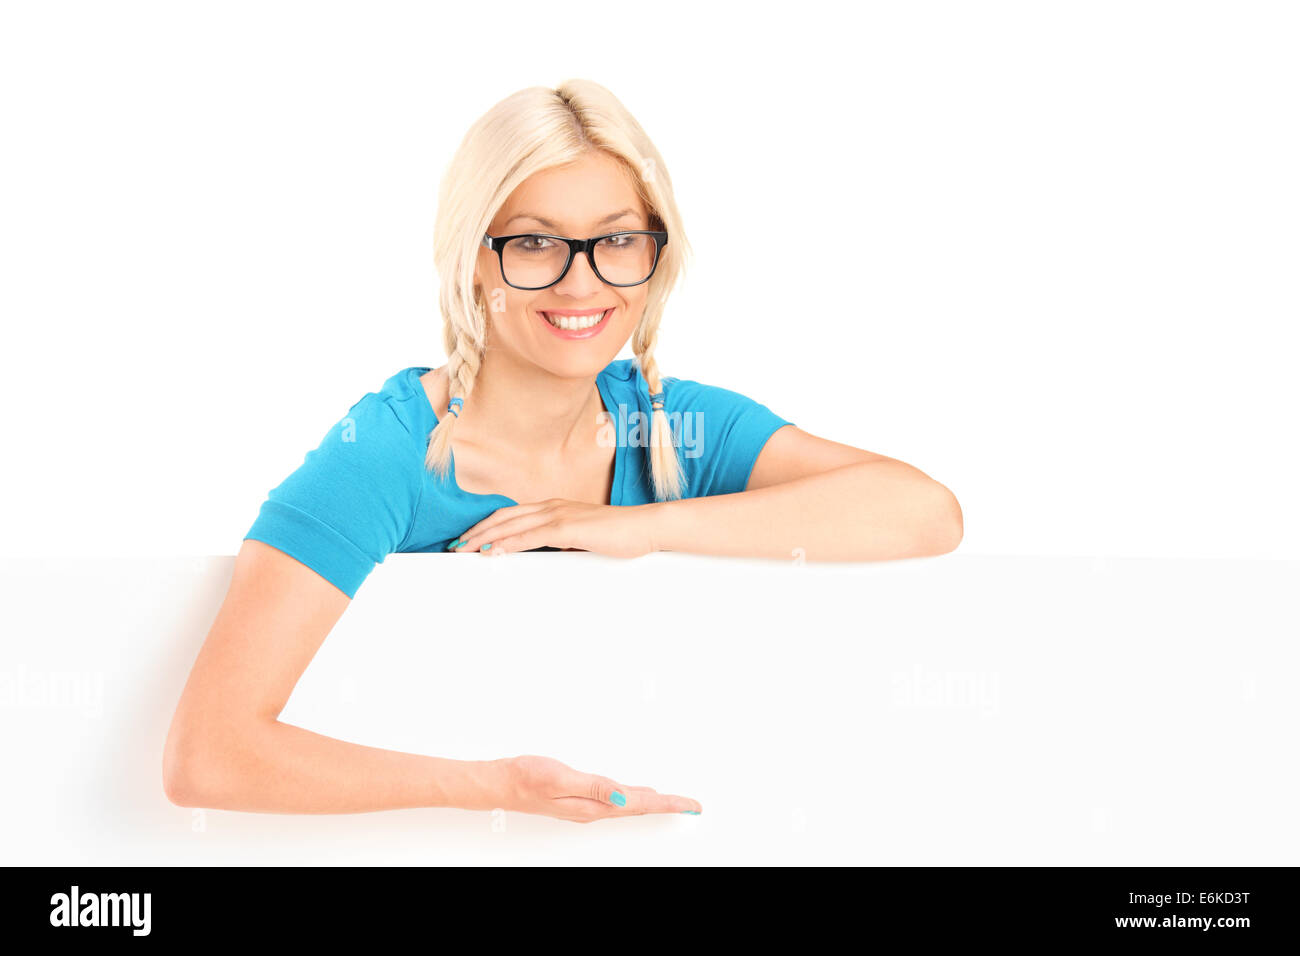 Blond woman gesturing with hand behind a panel - Stock Image